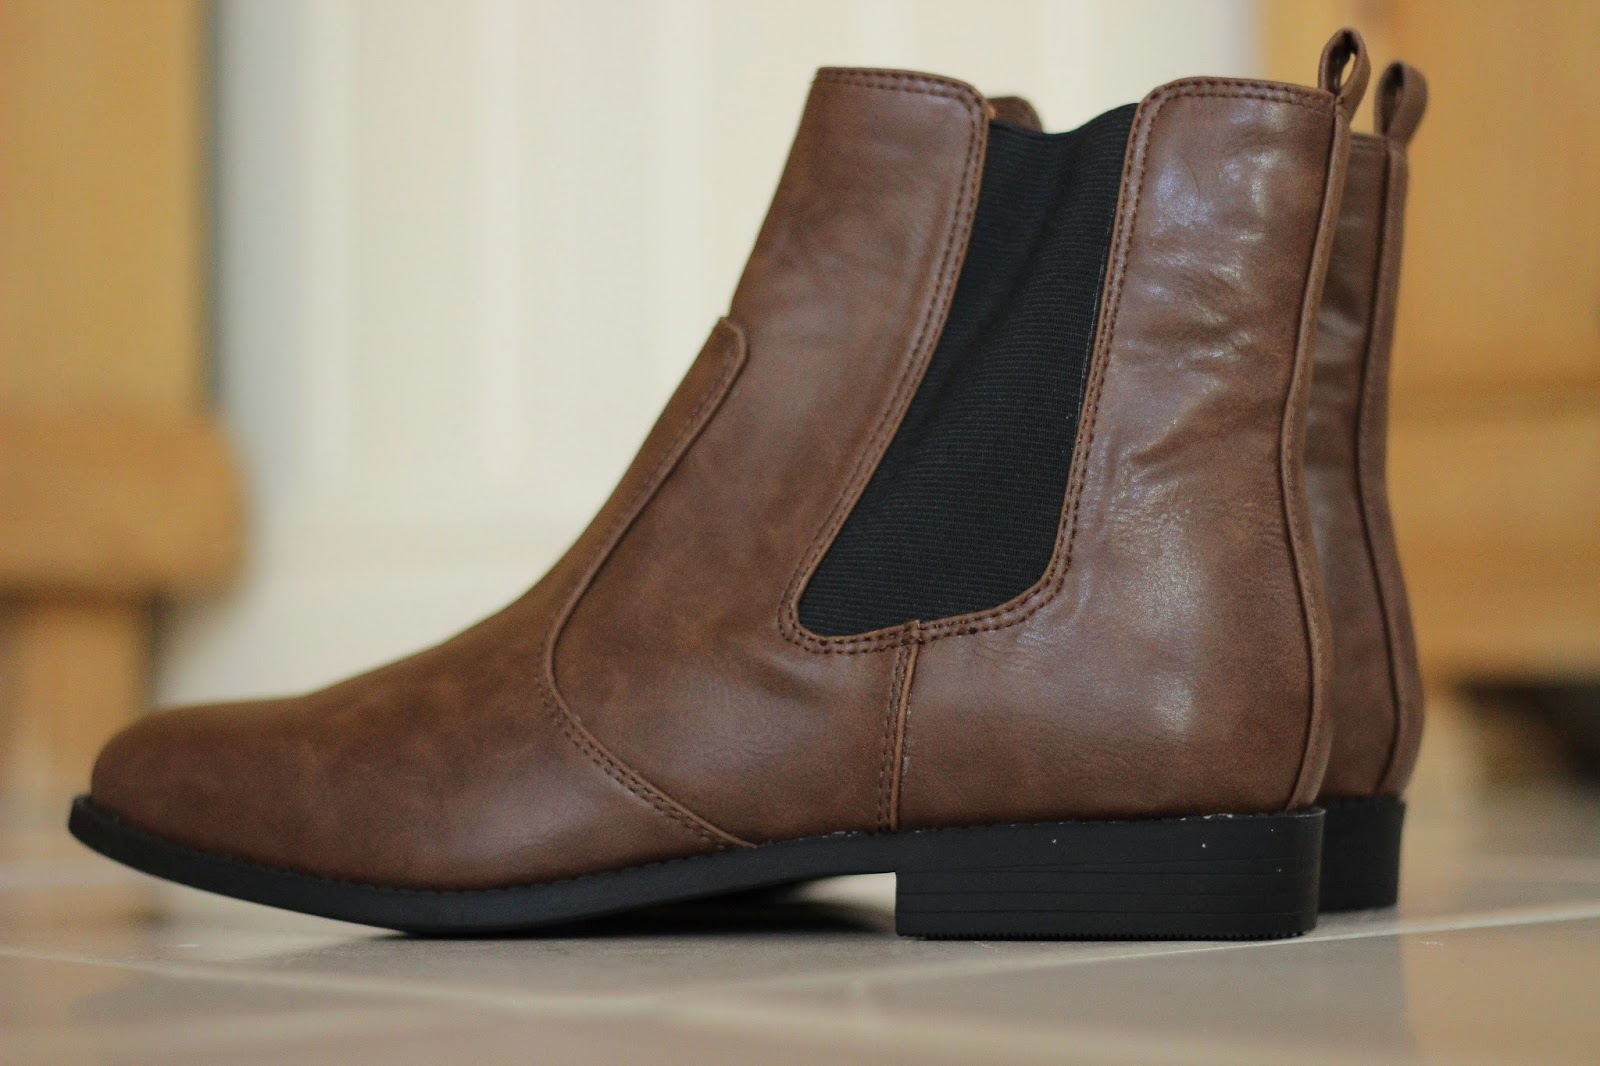 fashion trend budget, chelsea boots goedkoop cheap